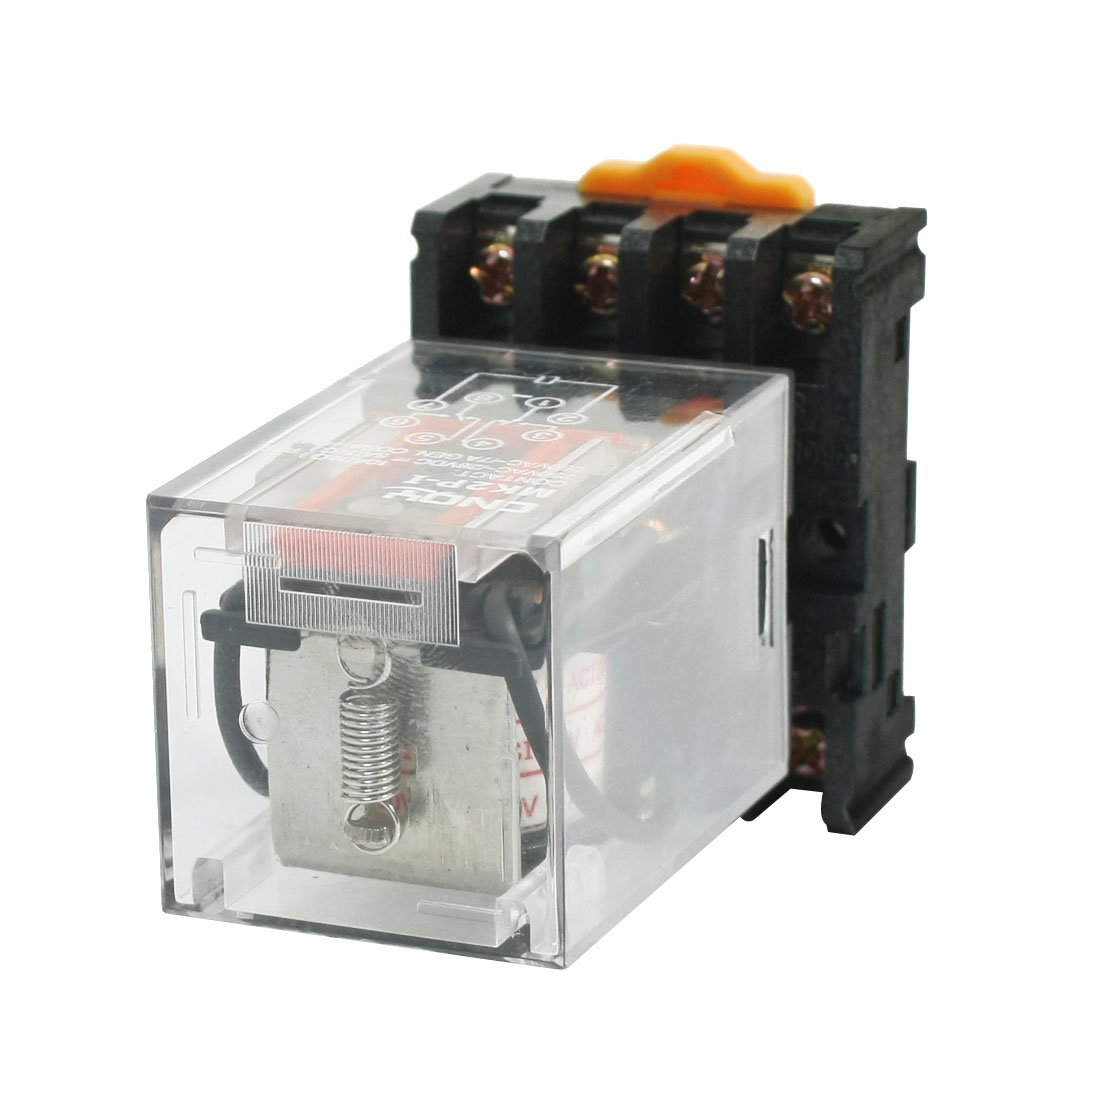 Uxcell a14011500ux0361 MK2PI DPDT Power Relay with Plugin Terminal